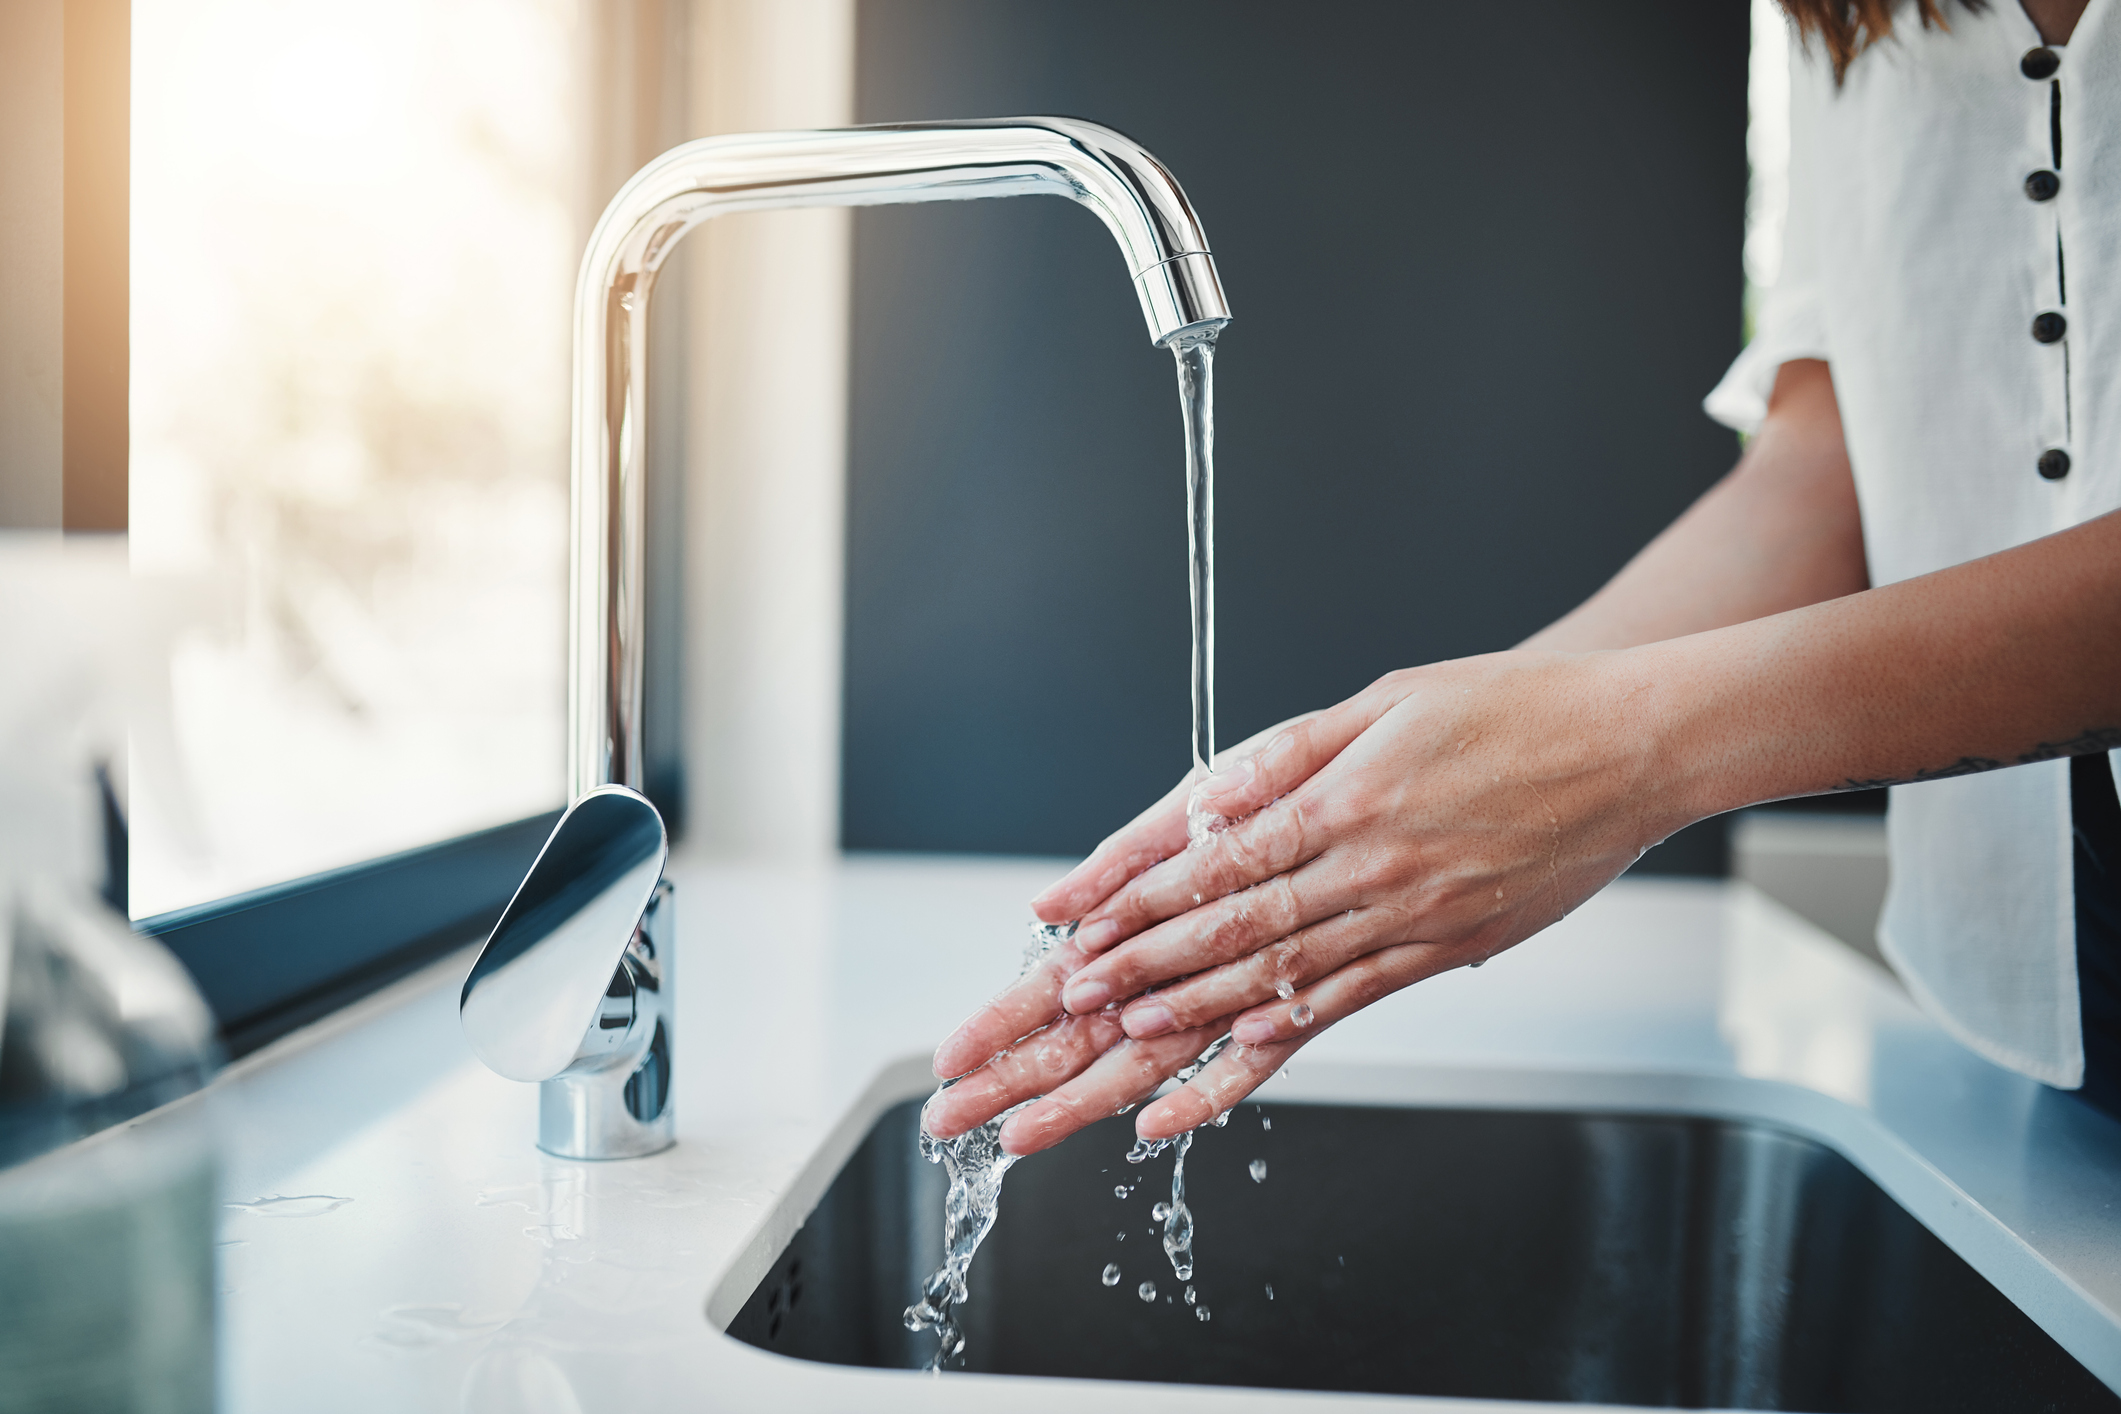 Cropped shot of an unrecognizable woman washing her hands in the kitchen sink